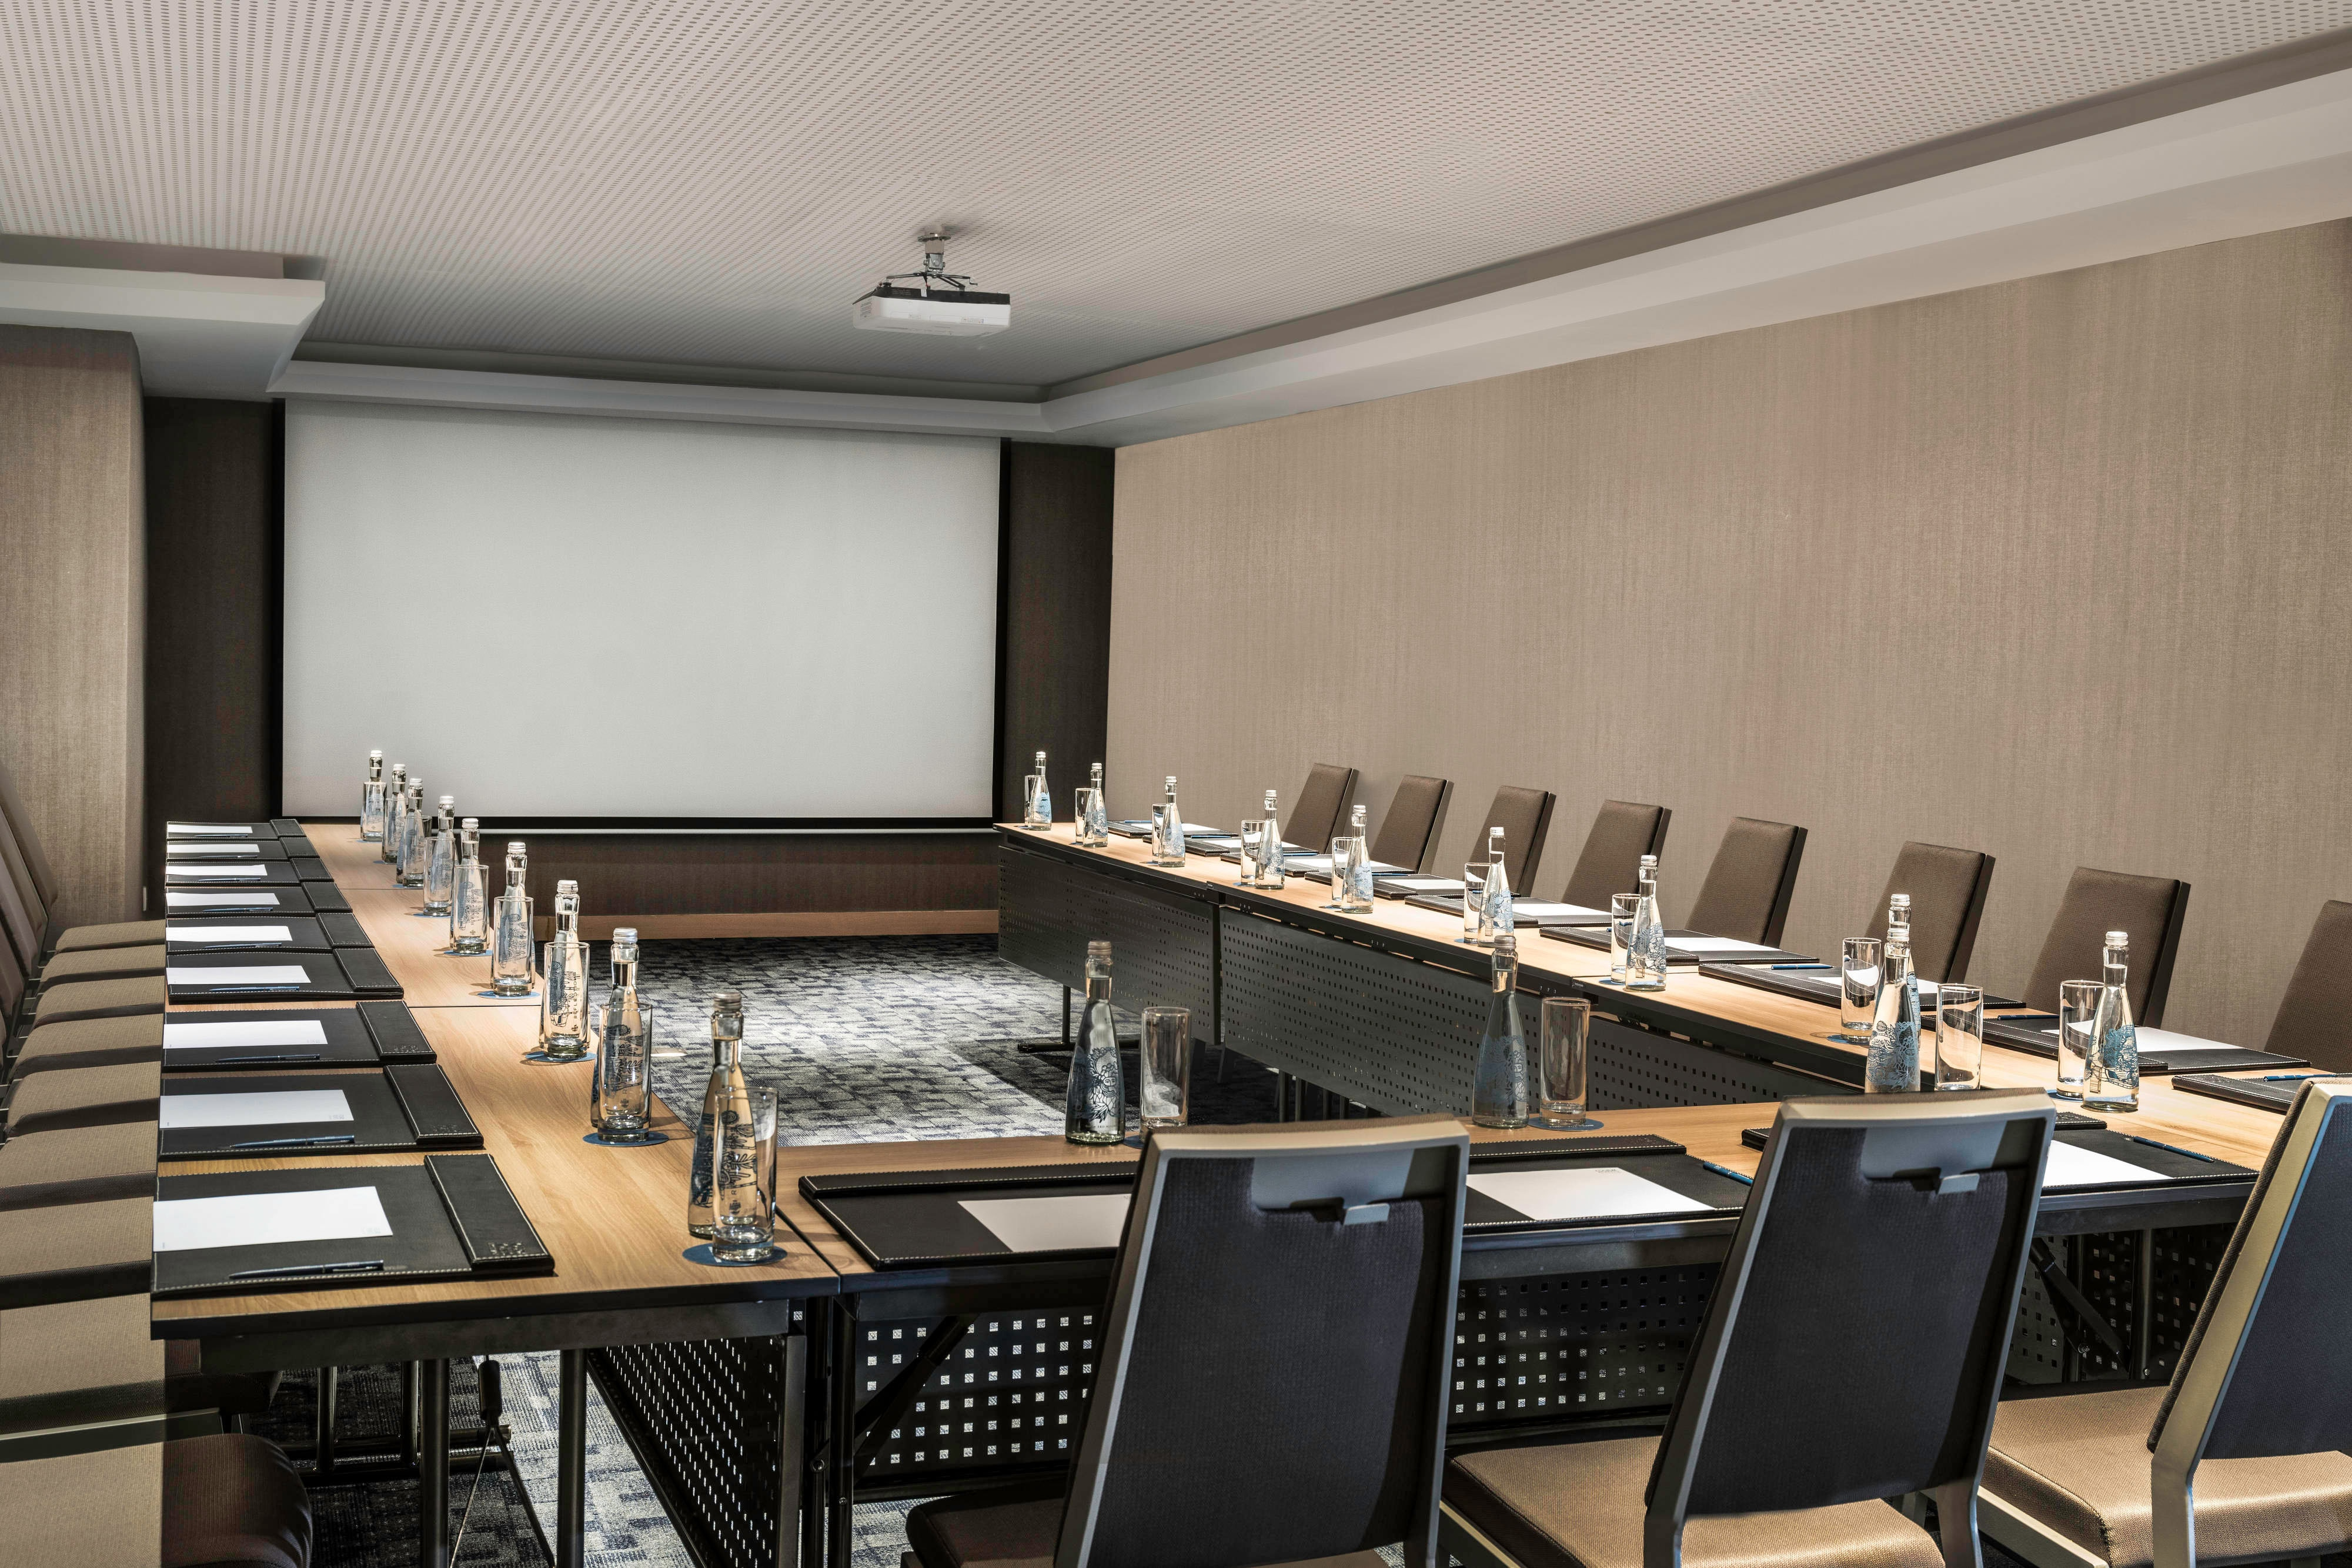 Oregano Meeting Room